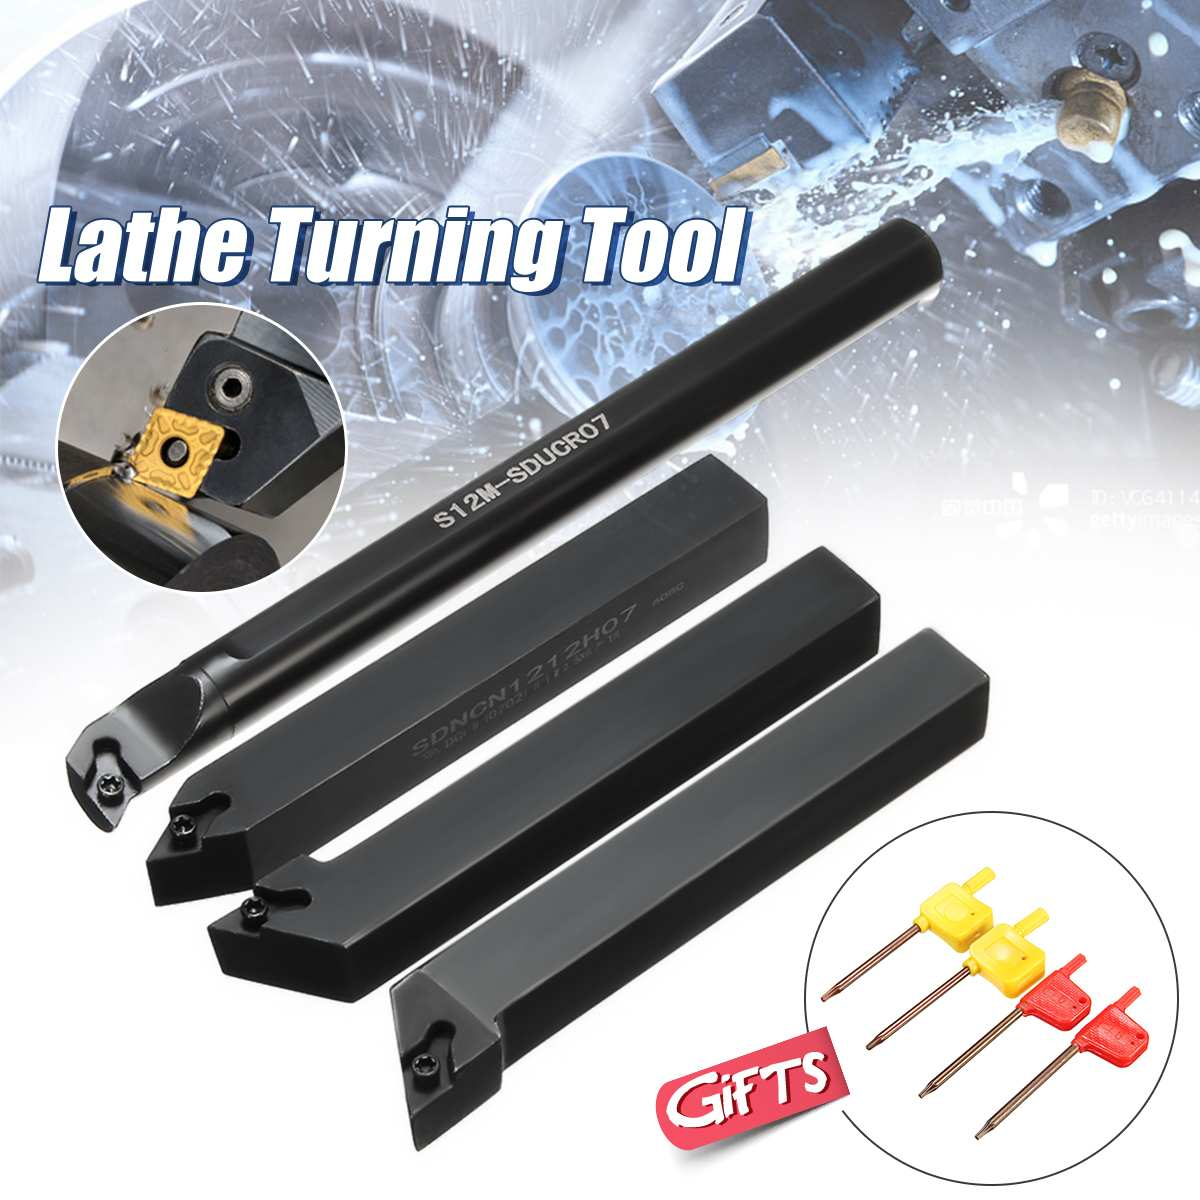 4Pcs Set Of 12mm Lathe Turning Tool Holder Borning Bar For DCMT0702 Insert New Arrival